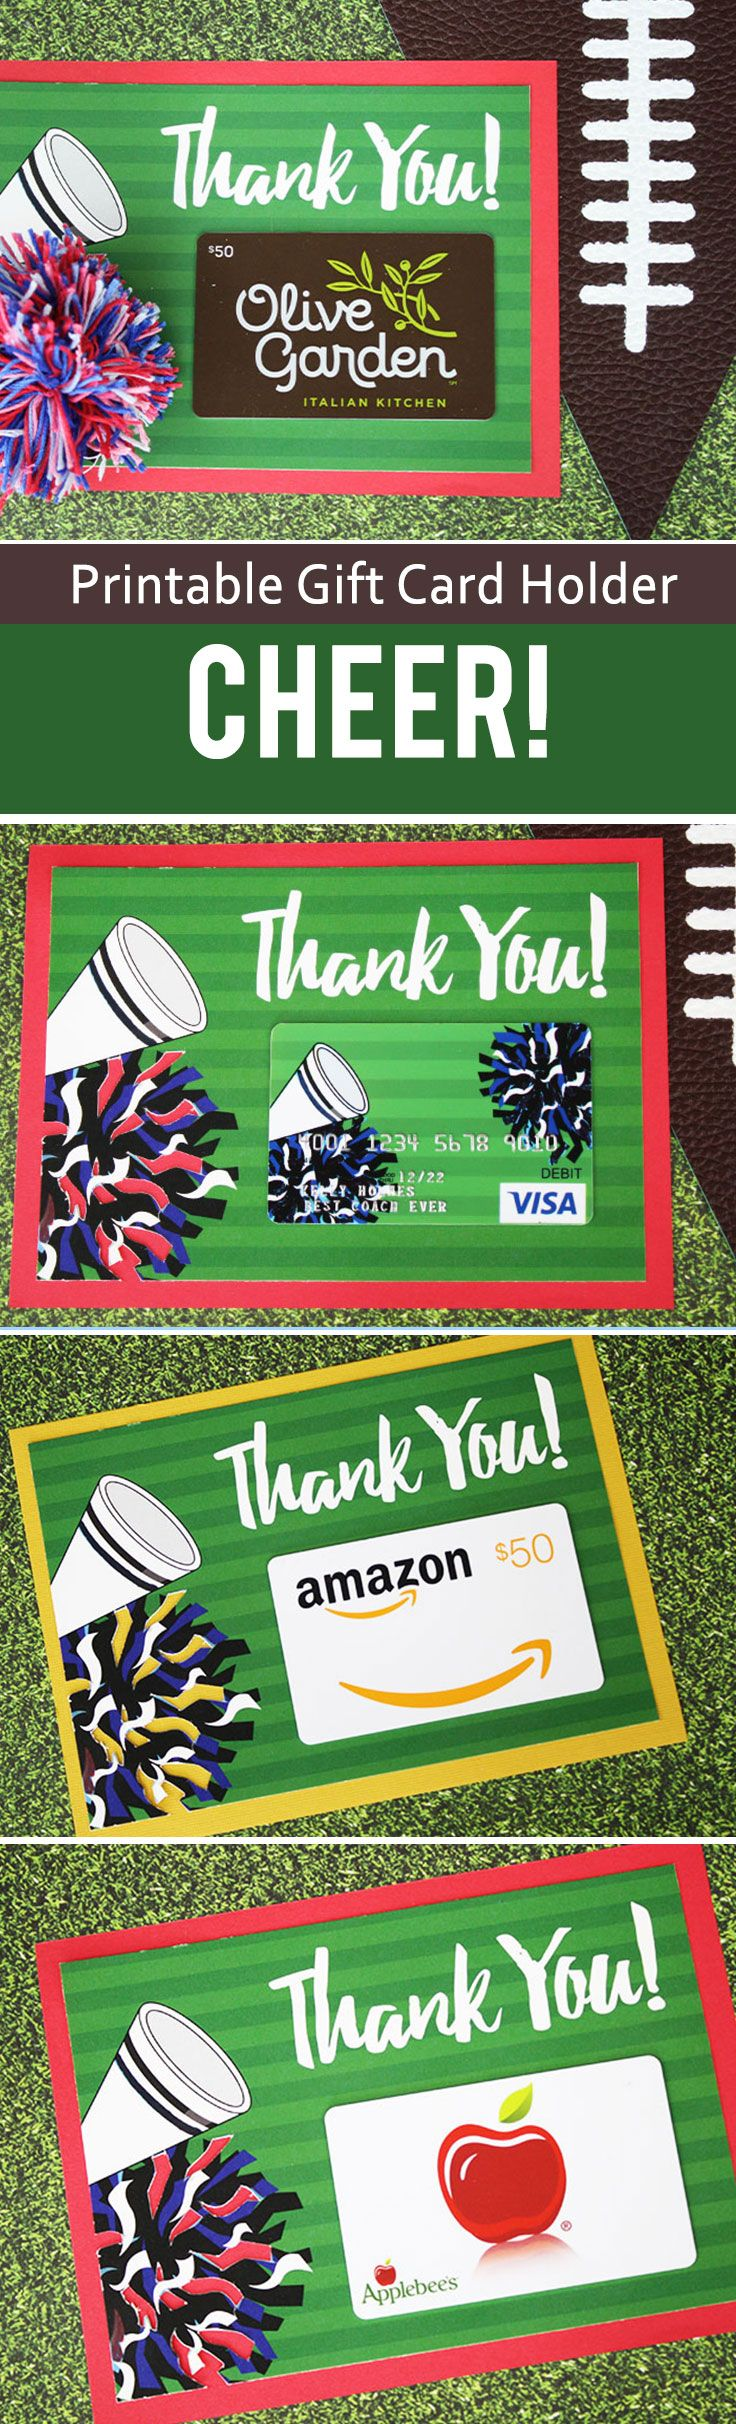 Free printable gift card holder to thank the cheer coach, pom mom and other fans of the team. Use the colors printed or get crafty and change them to your team colors.